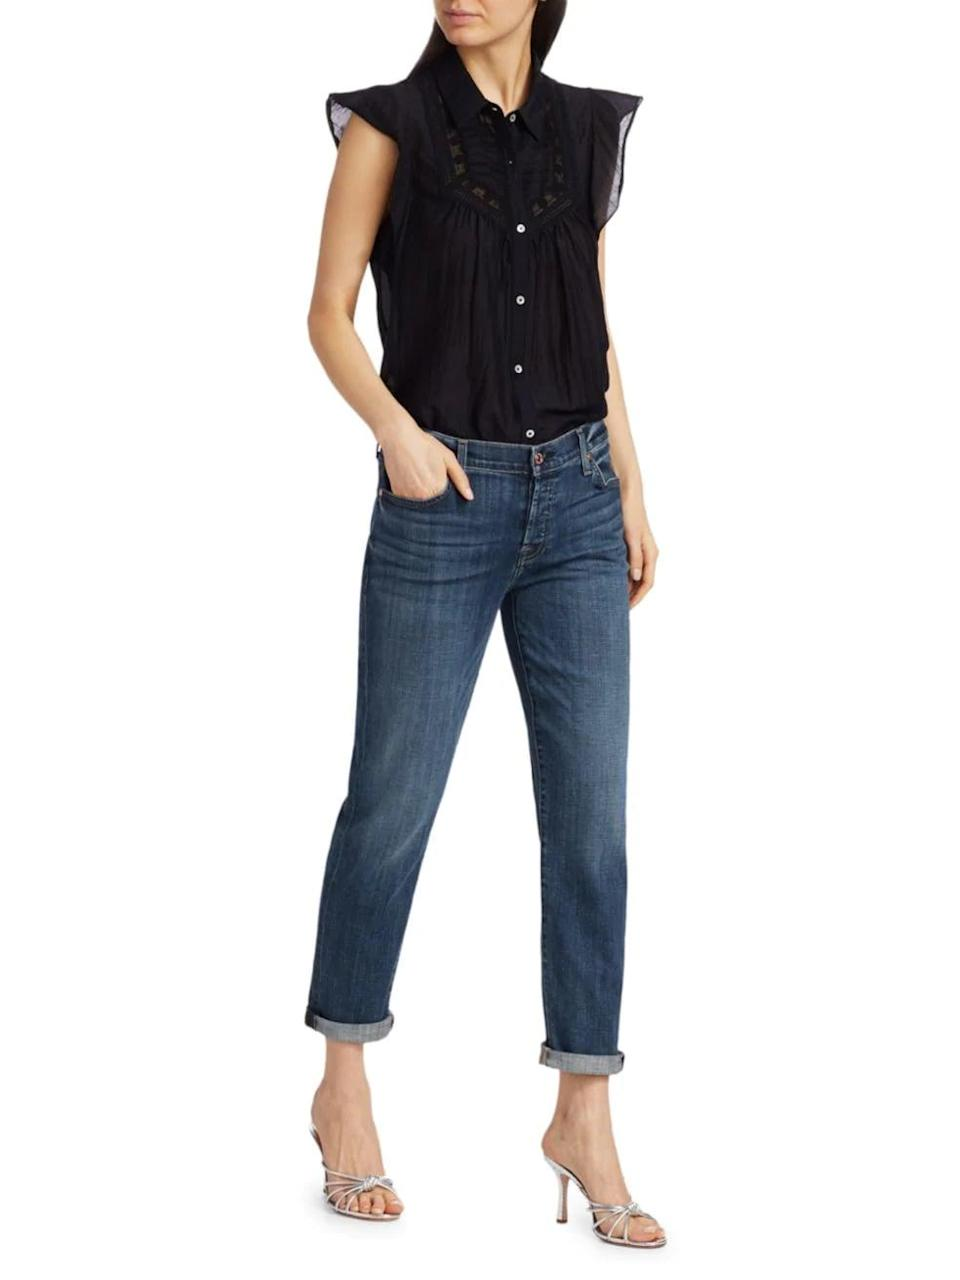 """<p>""""Even though I have a closet full of jeans, somehow I always go back to my favorite <span>7 For All Mankind Josefina Boyfriend Jeans</span> ($199). I basically live in them because they're so soft, they don't cut into my stomach, and they have a cool vintage feel."""" - Nikita Charuza, editor, Fashion</p>"""